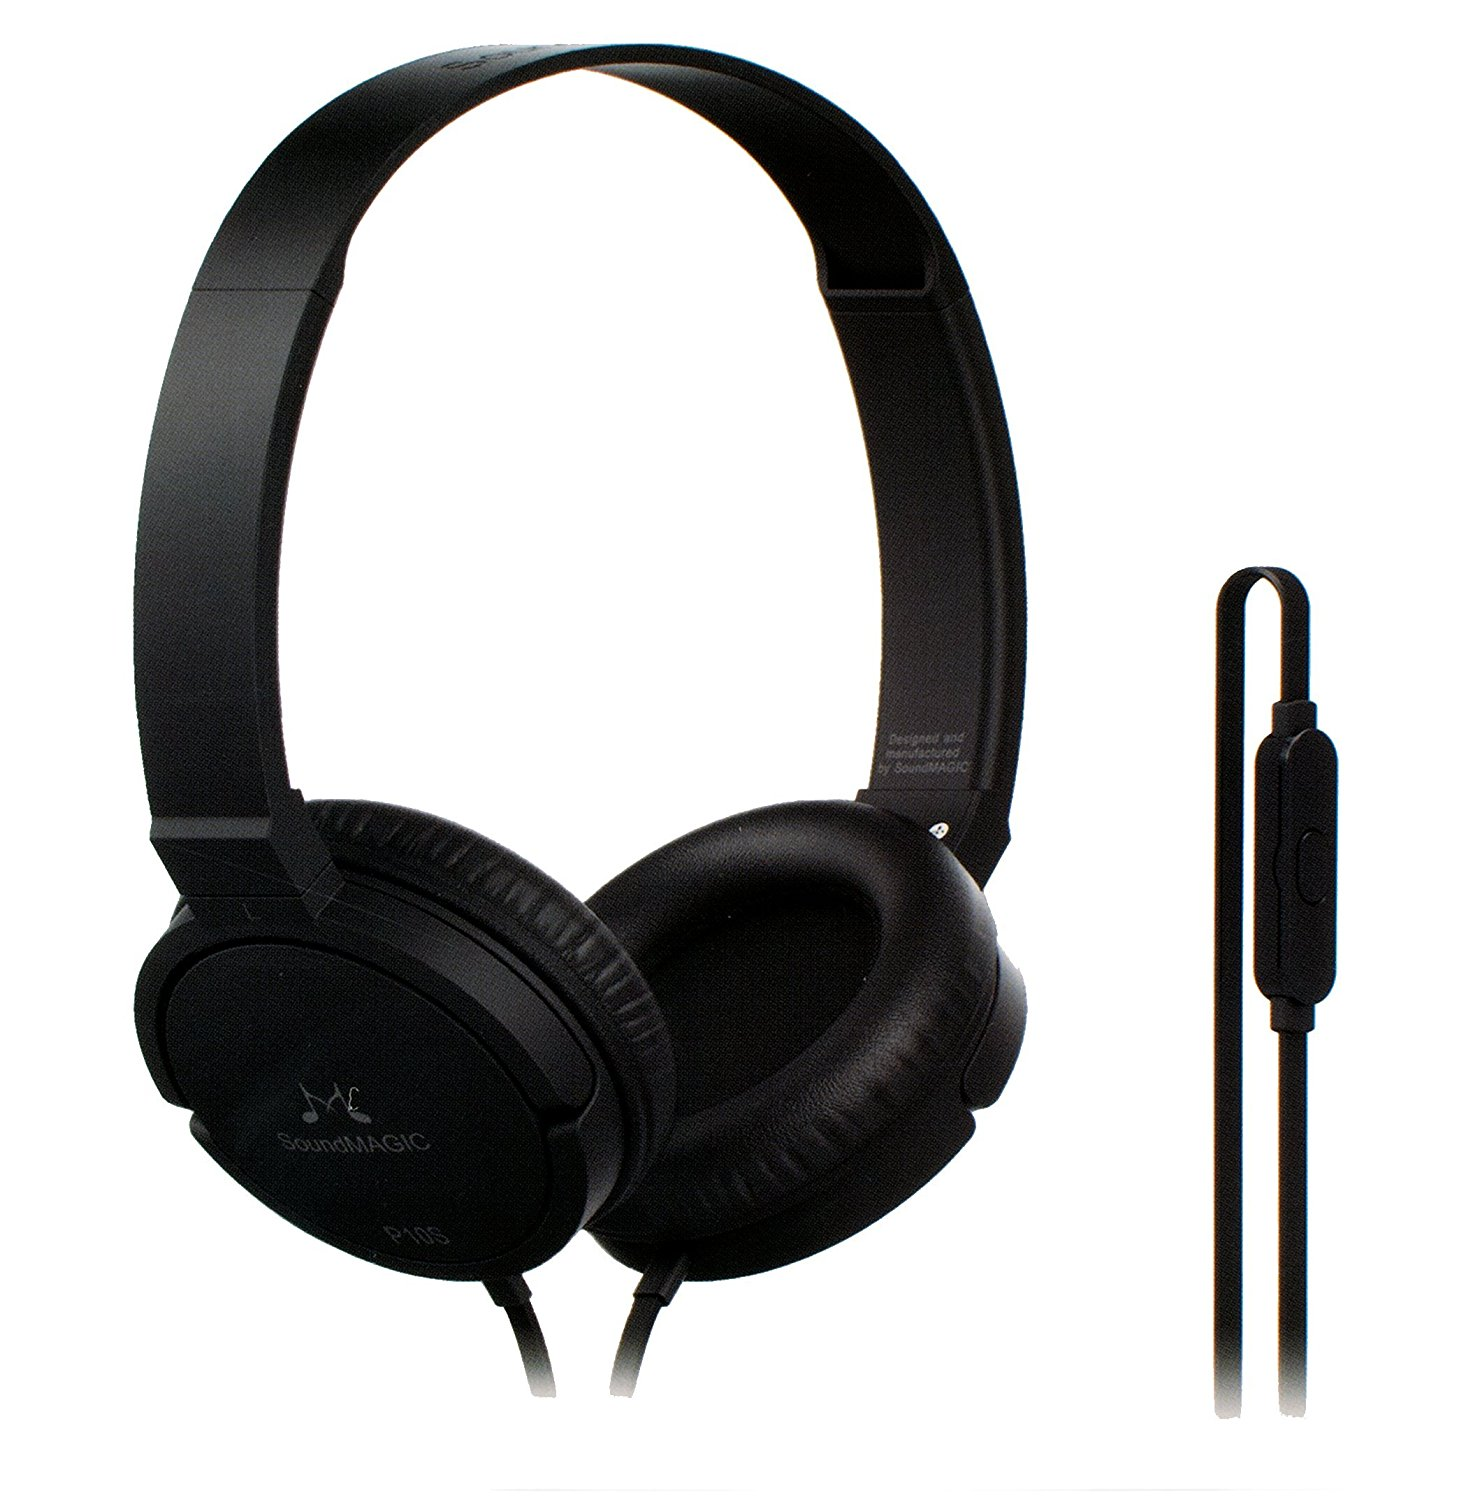 Amazon - Buy SoundMagic P10S Headphone with Mic(black, white colors) for just Rs.399(73% off)